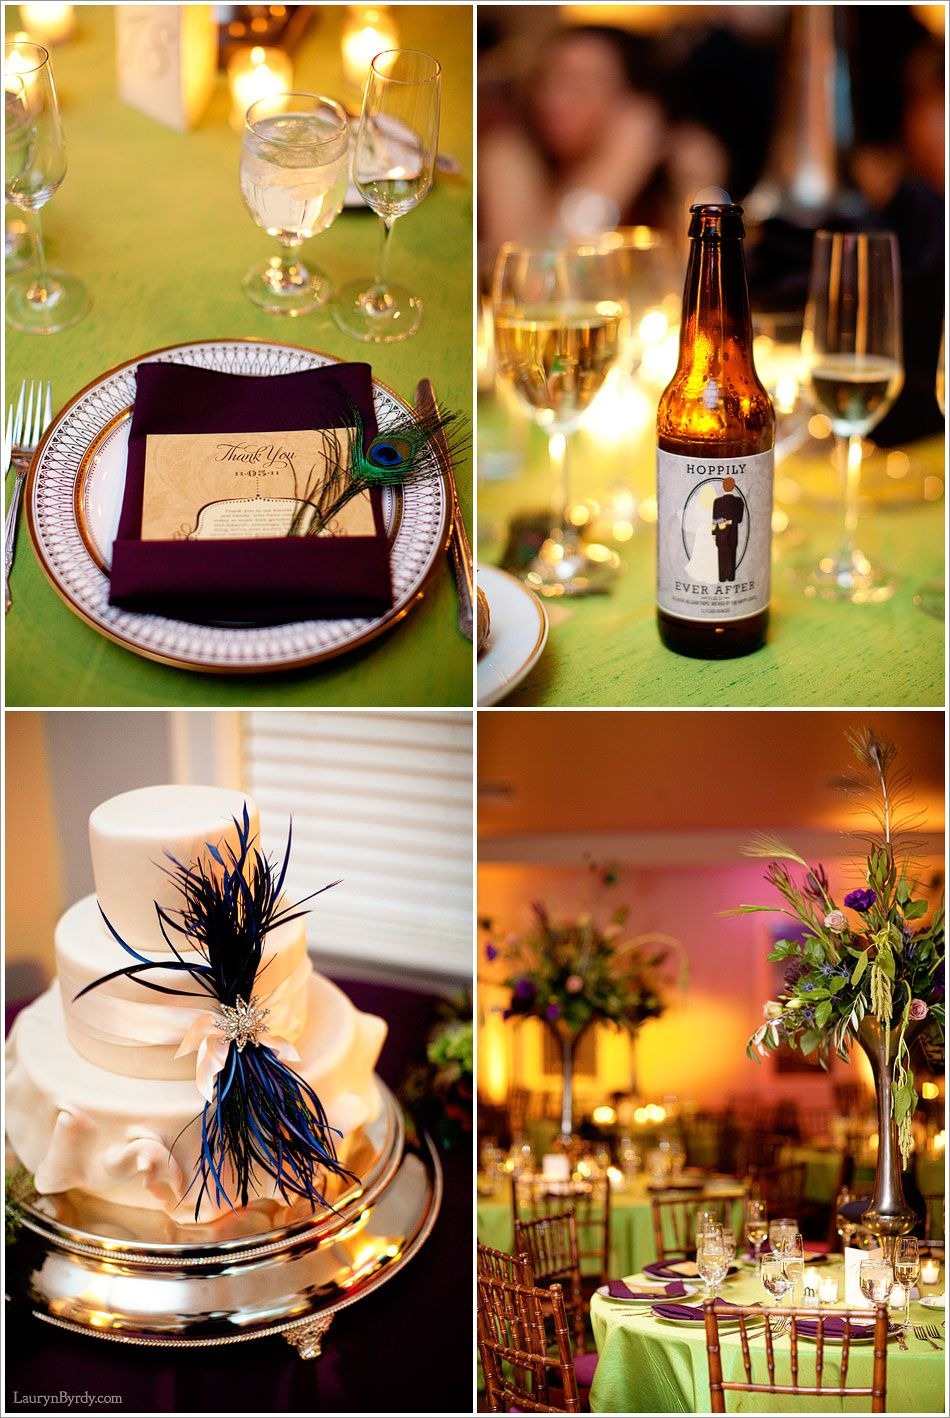 Diy wedding table decorations ideas  Pretty wedding decoration ideas  Wedding Decor u Centerpieces